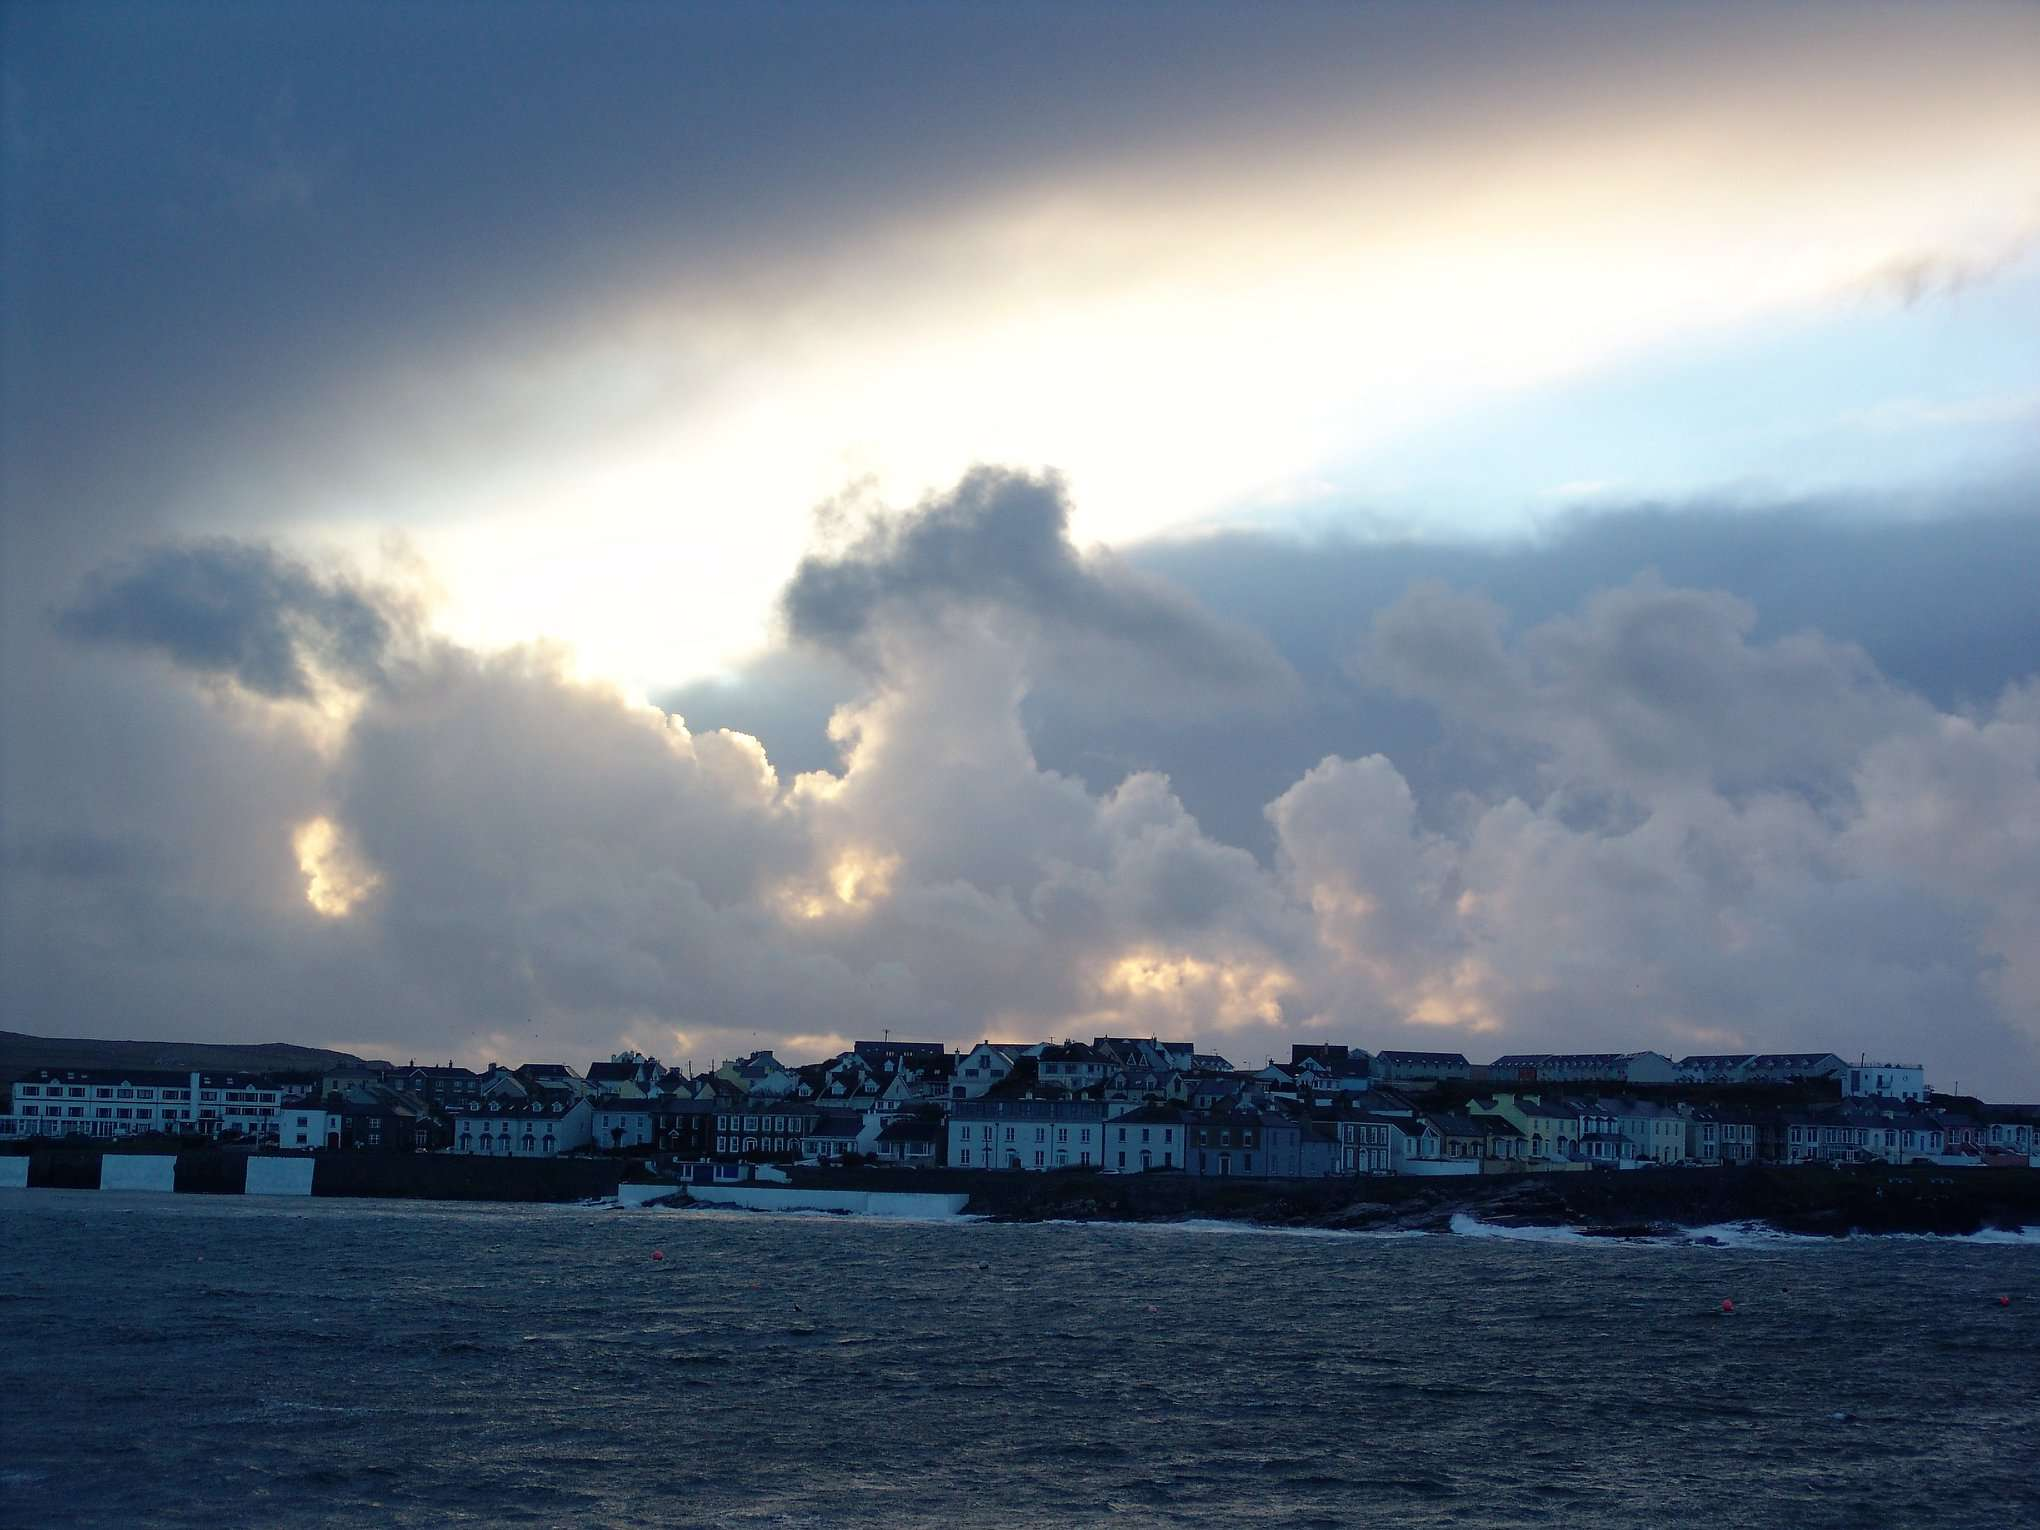 Kilkee in county Clare fronting onto the Atlantic sea